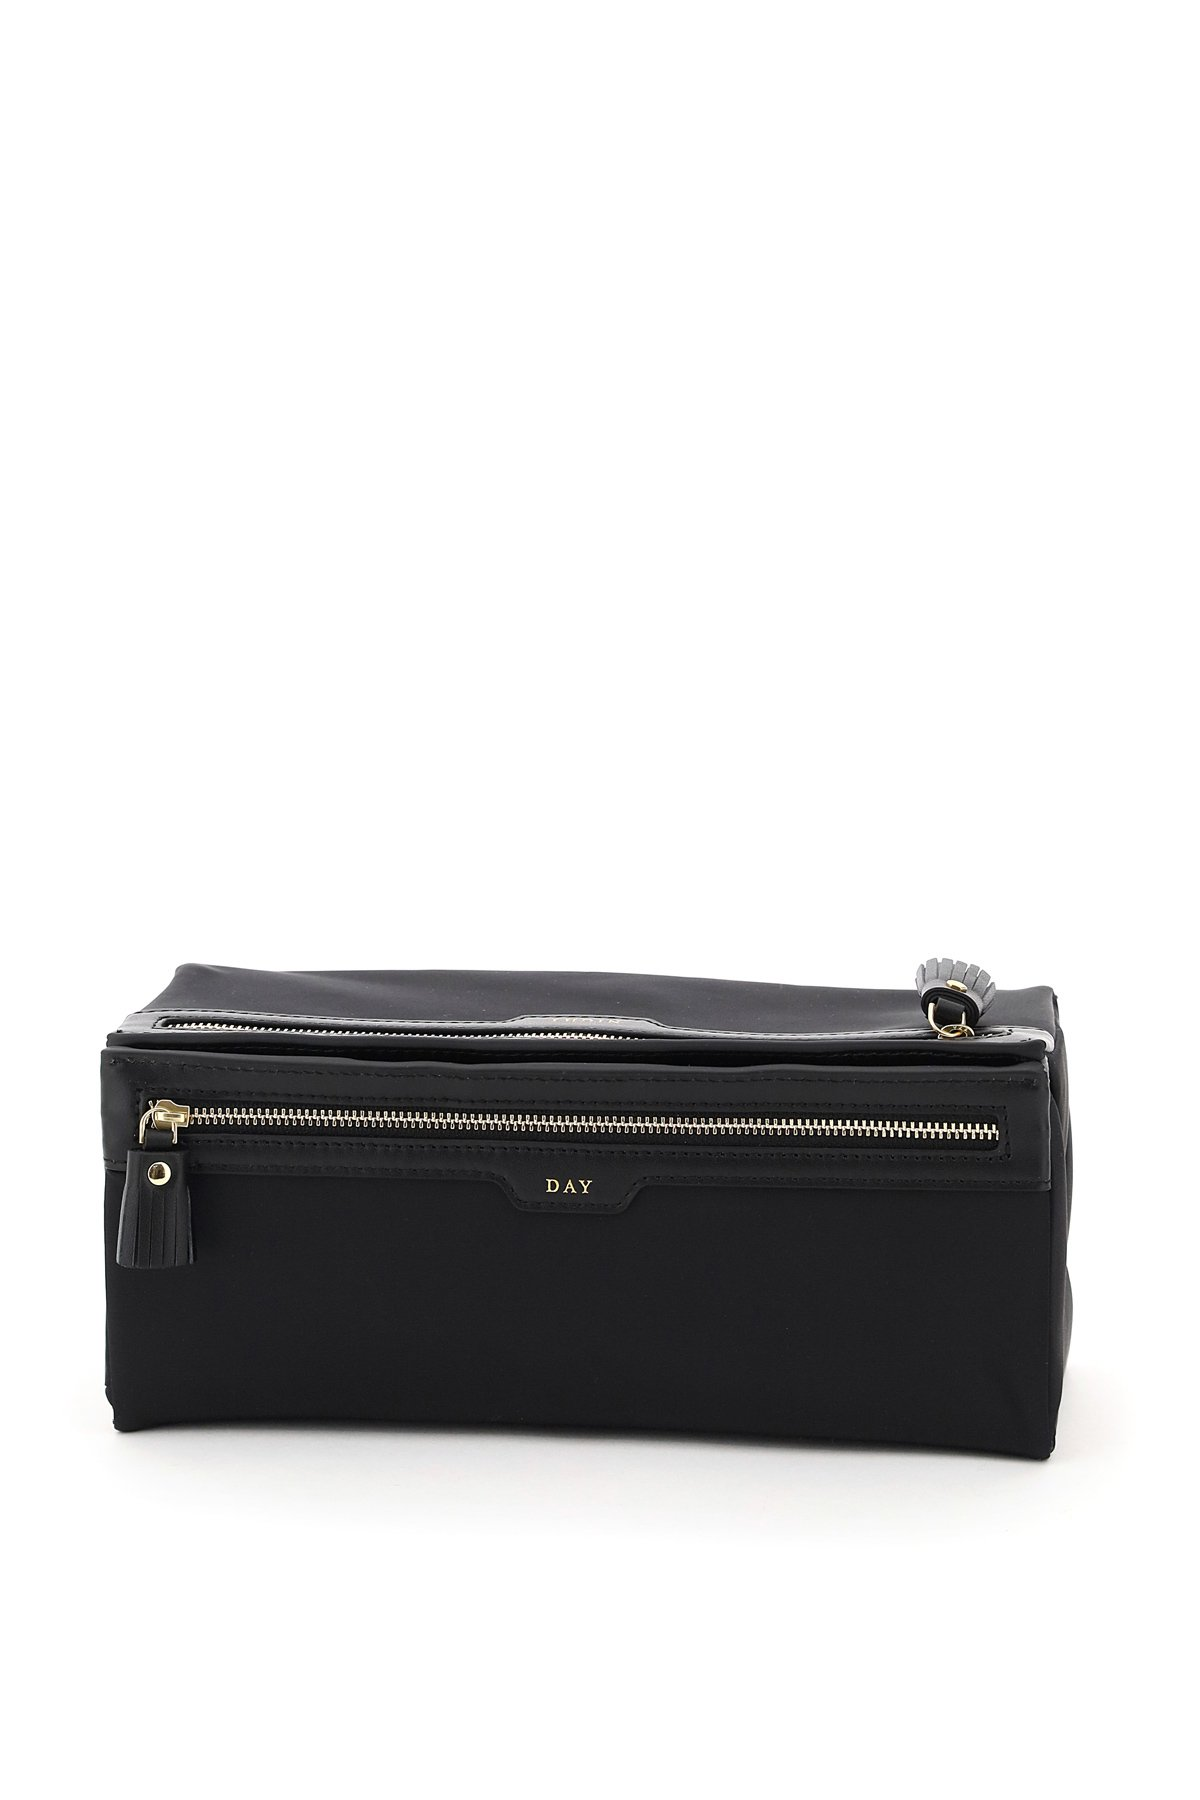 Anya hindmarch beauty pouch night and day